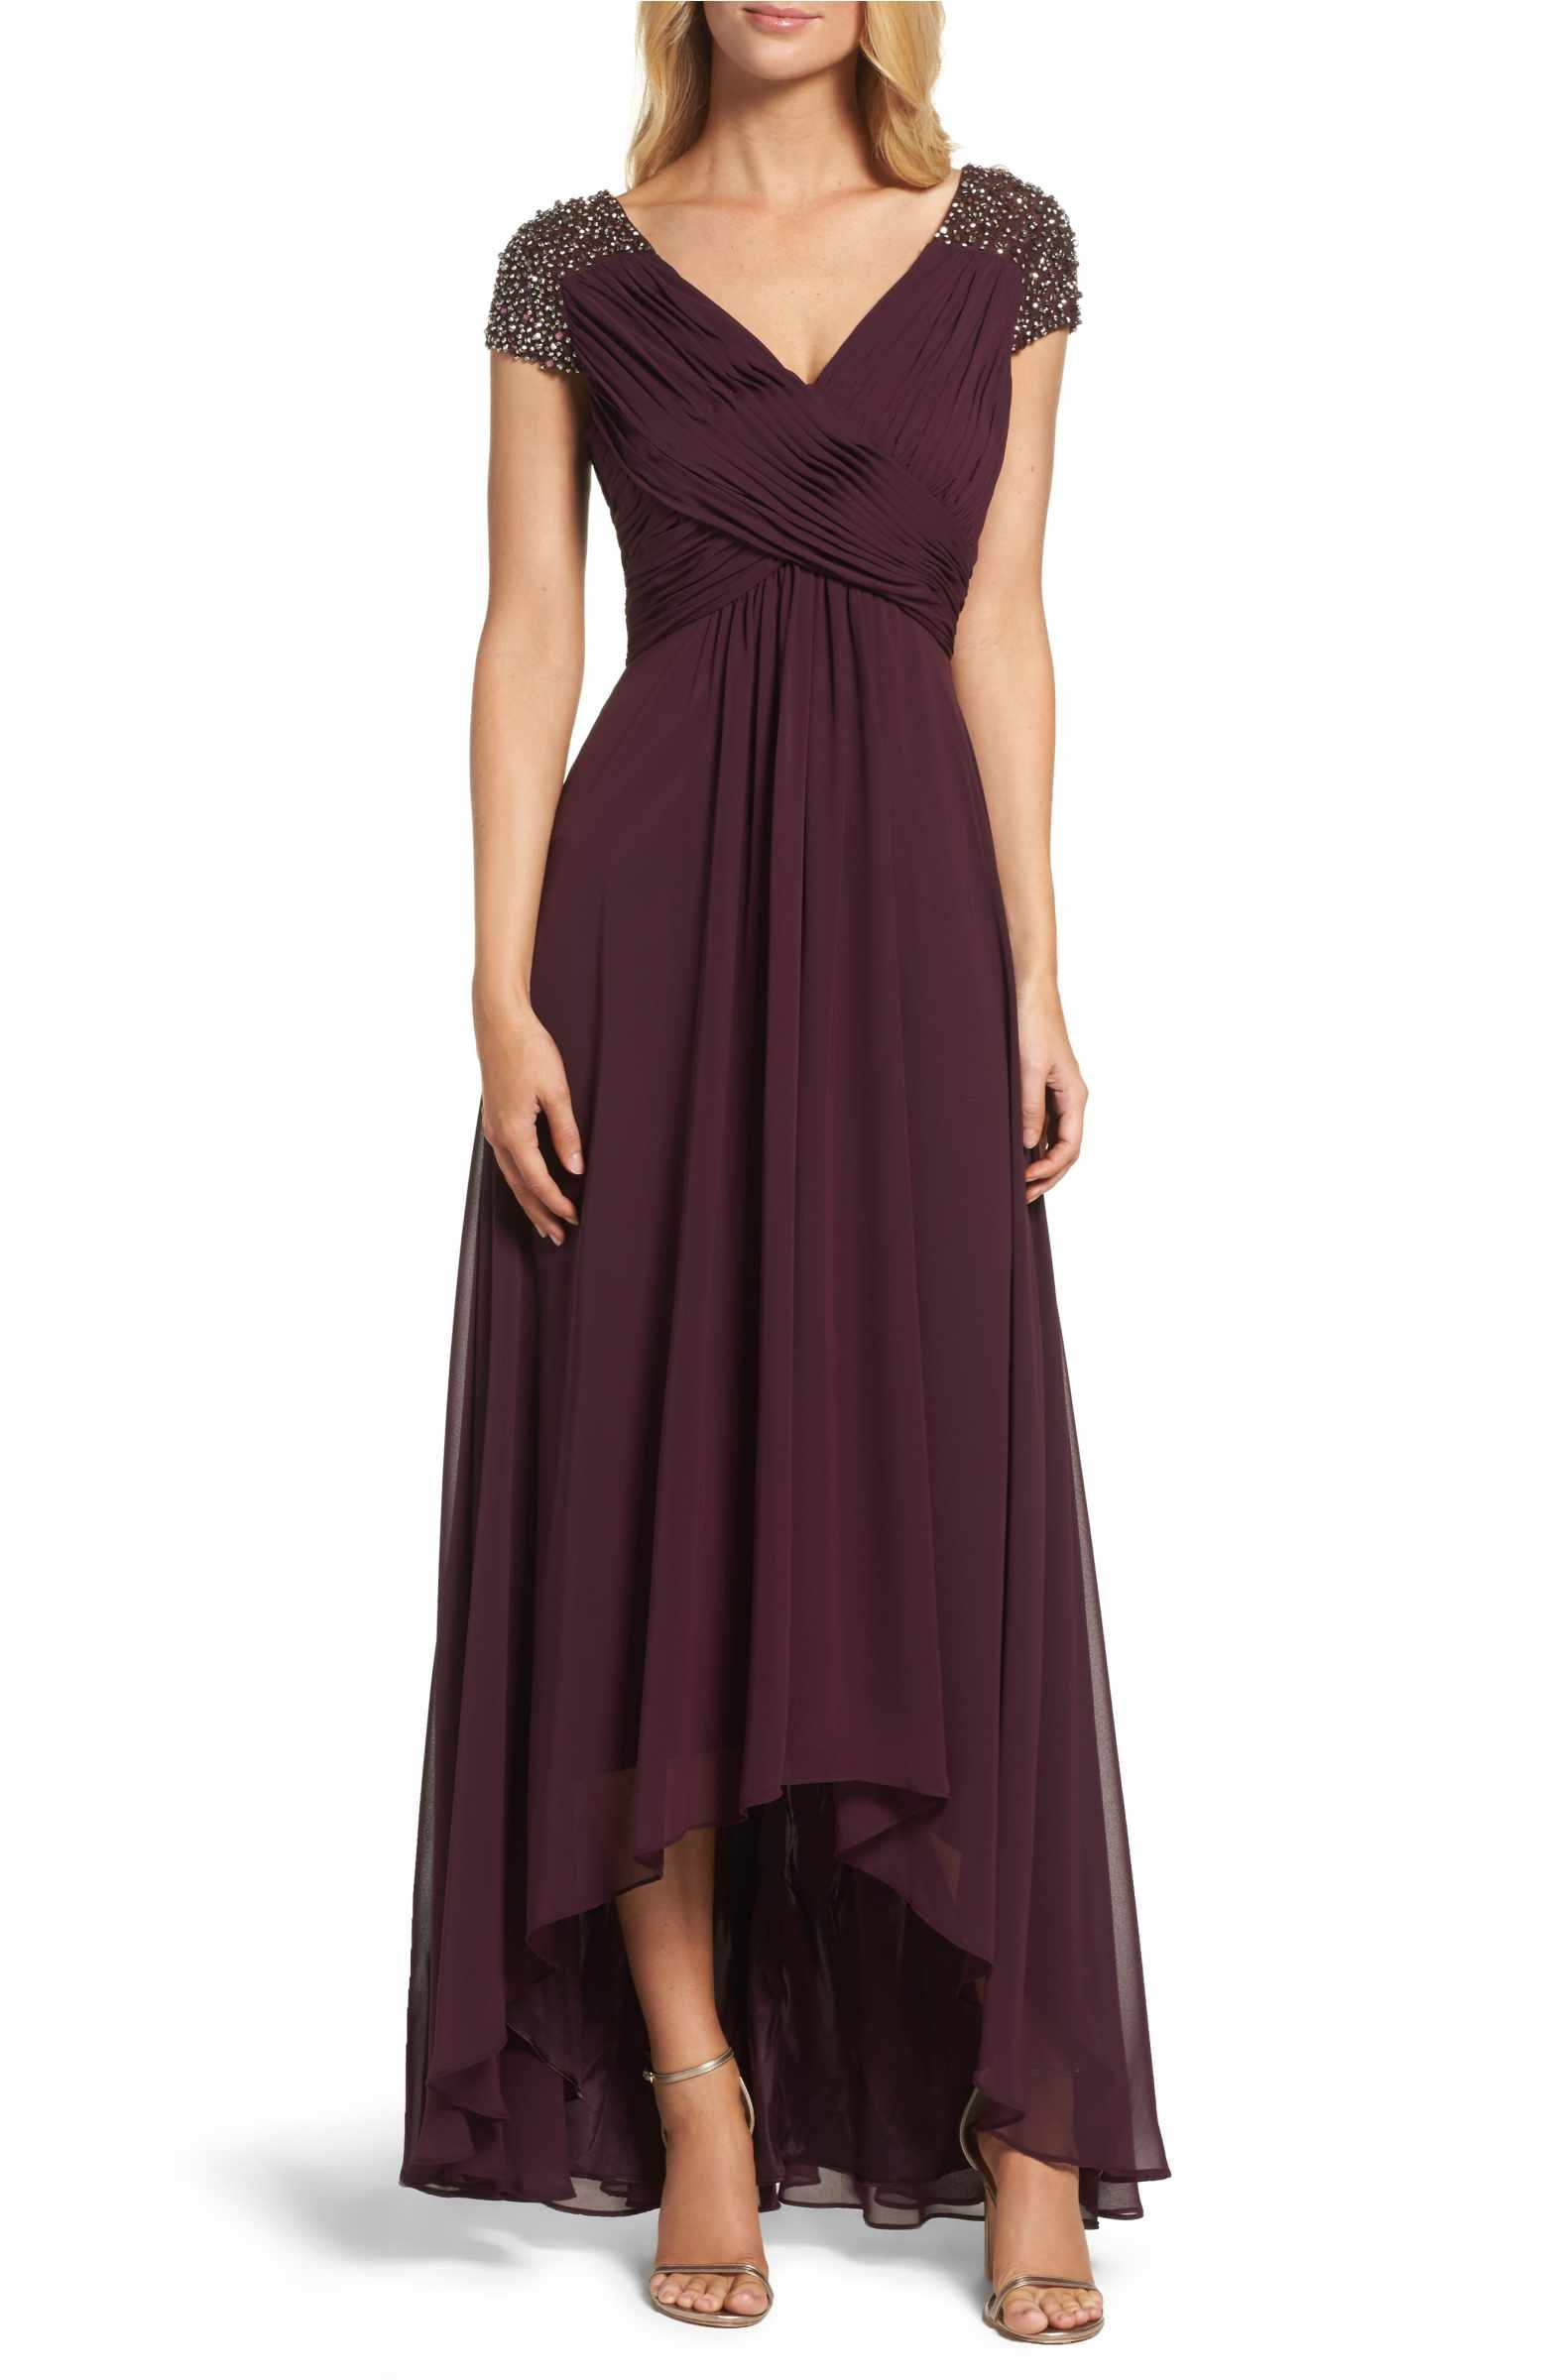 Main image eliza j embellished pleated chiffon gown wedding